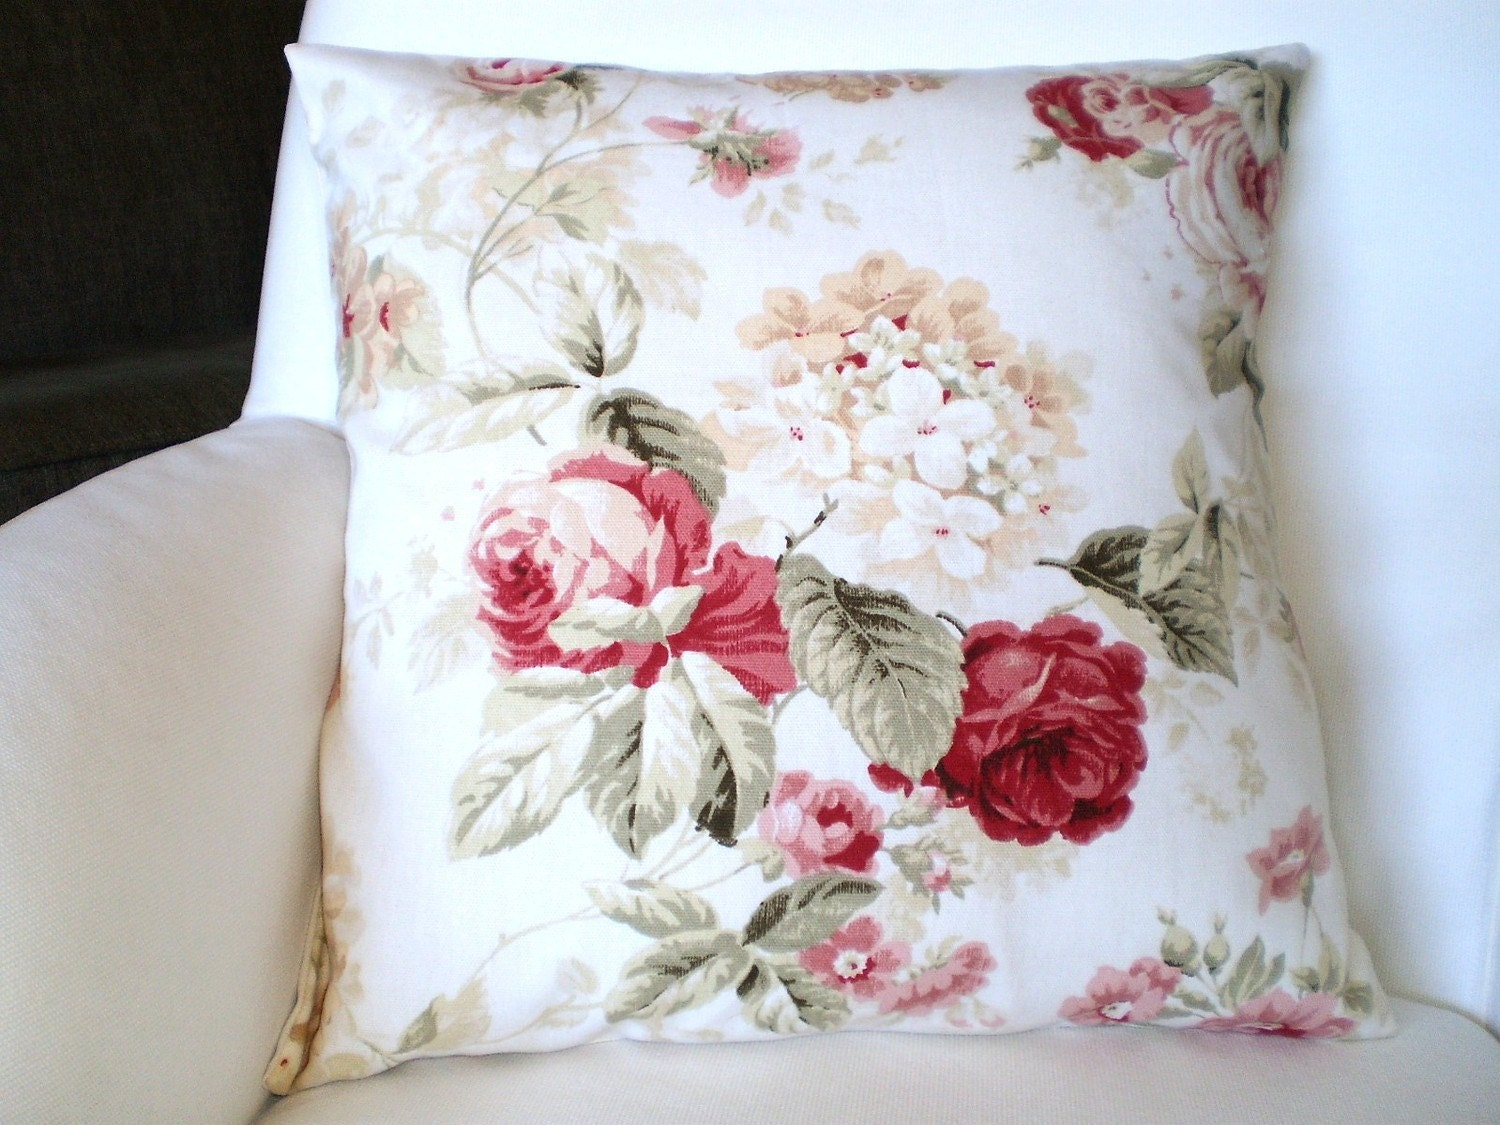 Throw Pillow Cushion Cover 16 x 16 Shabby Chic by FabricJunkie1640